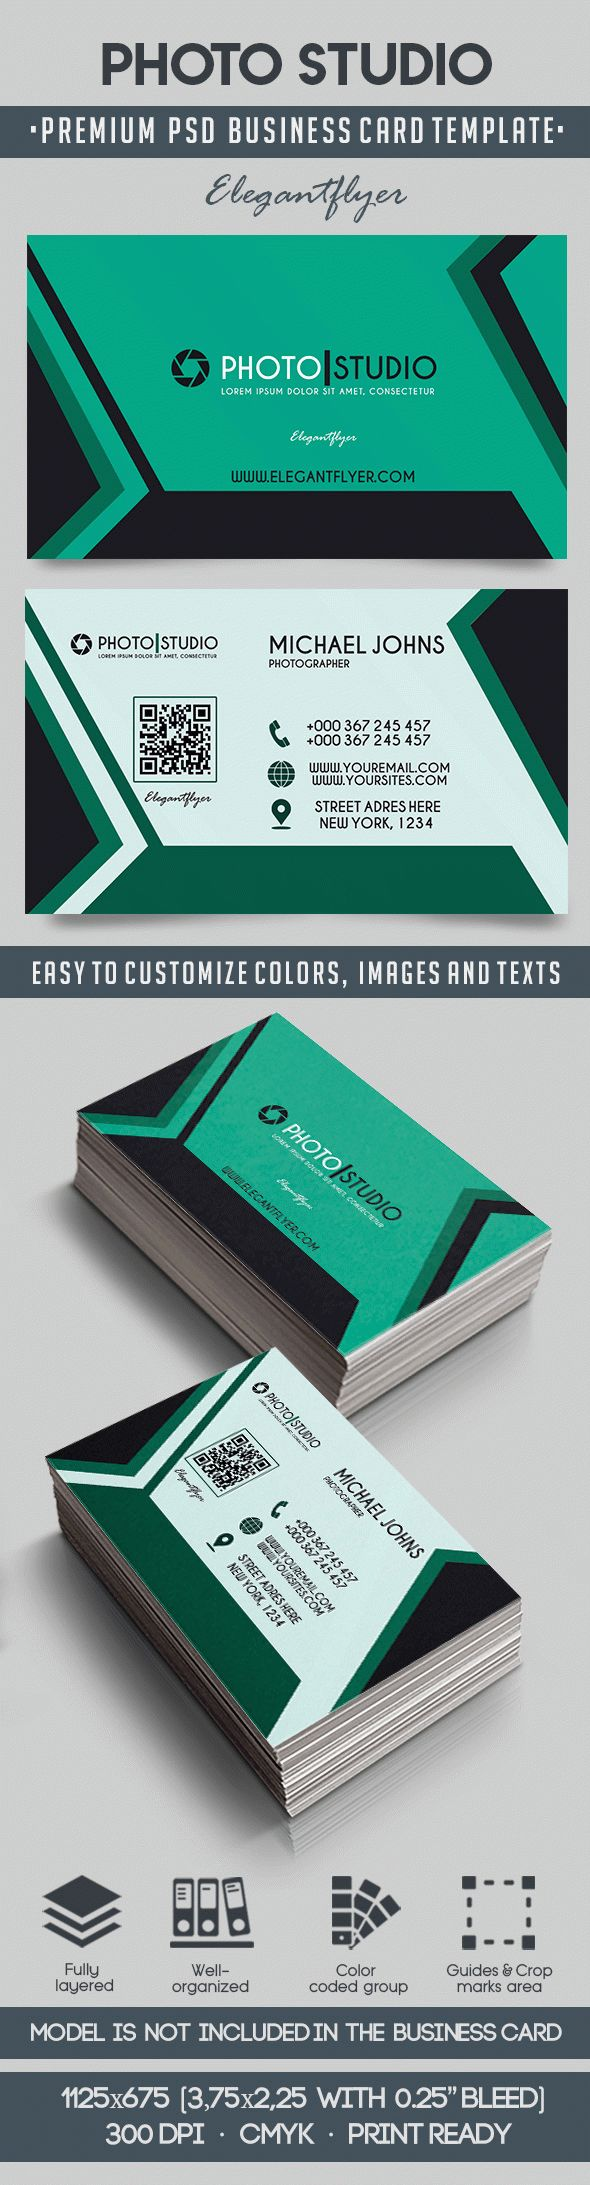 Photo Studio – Premium Business Card Templates PSD